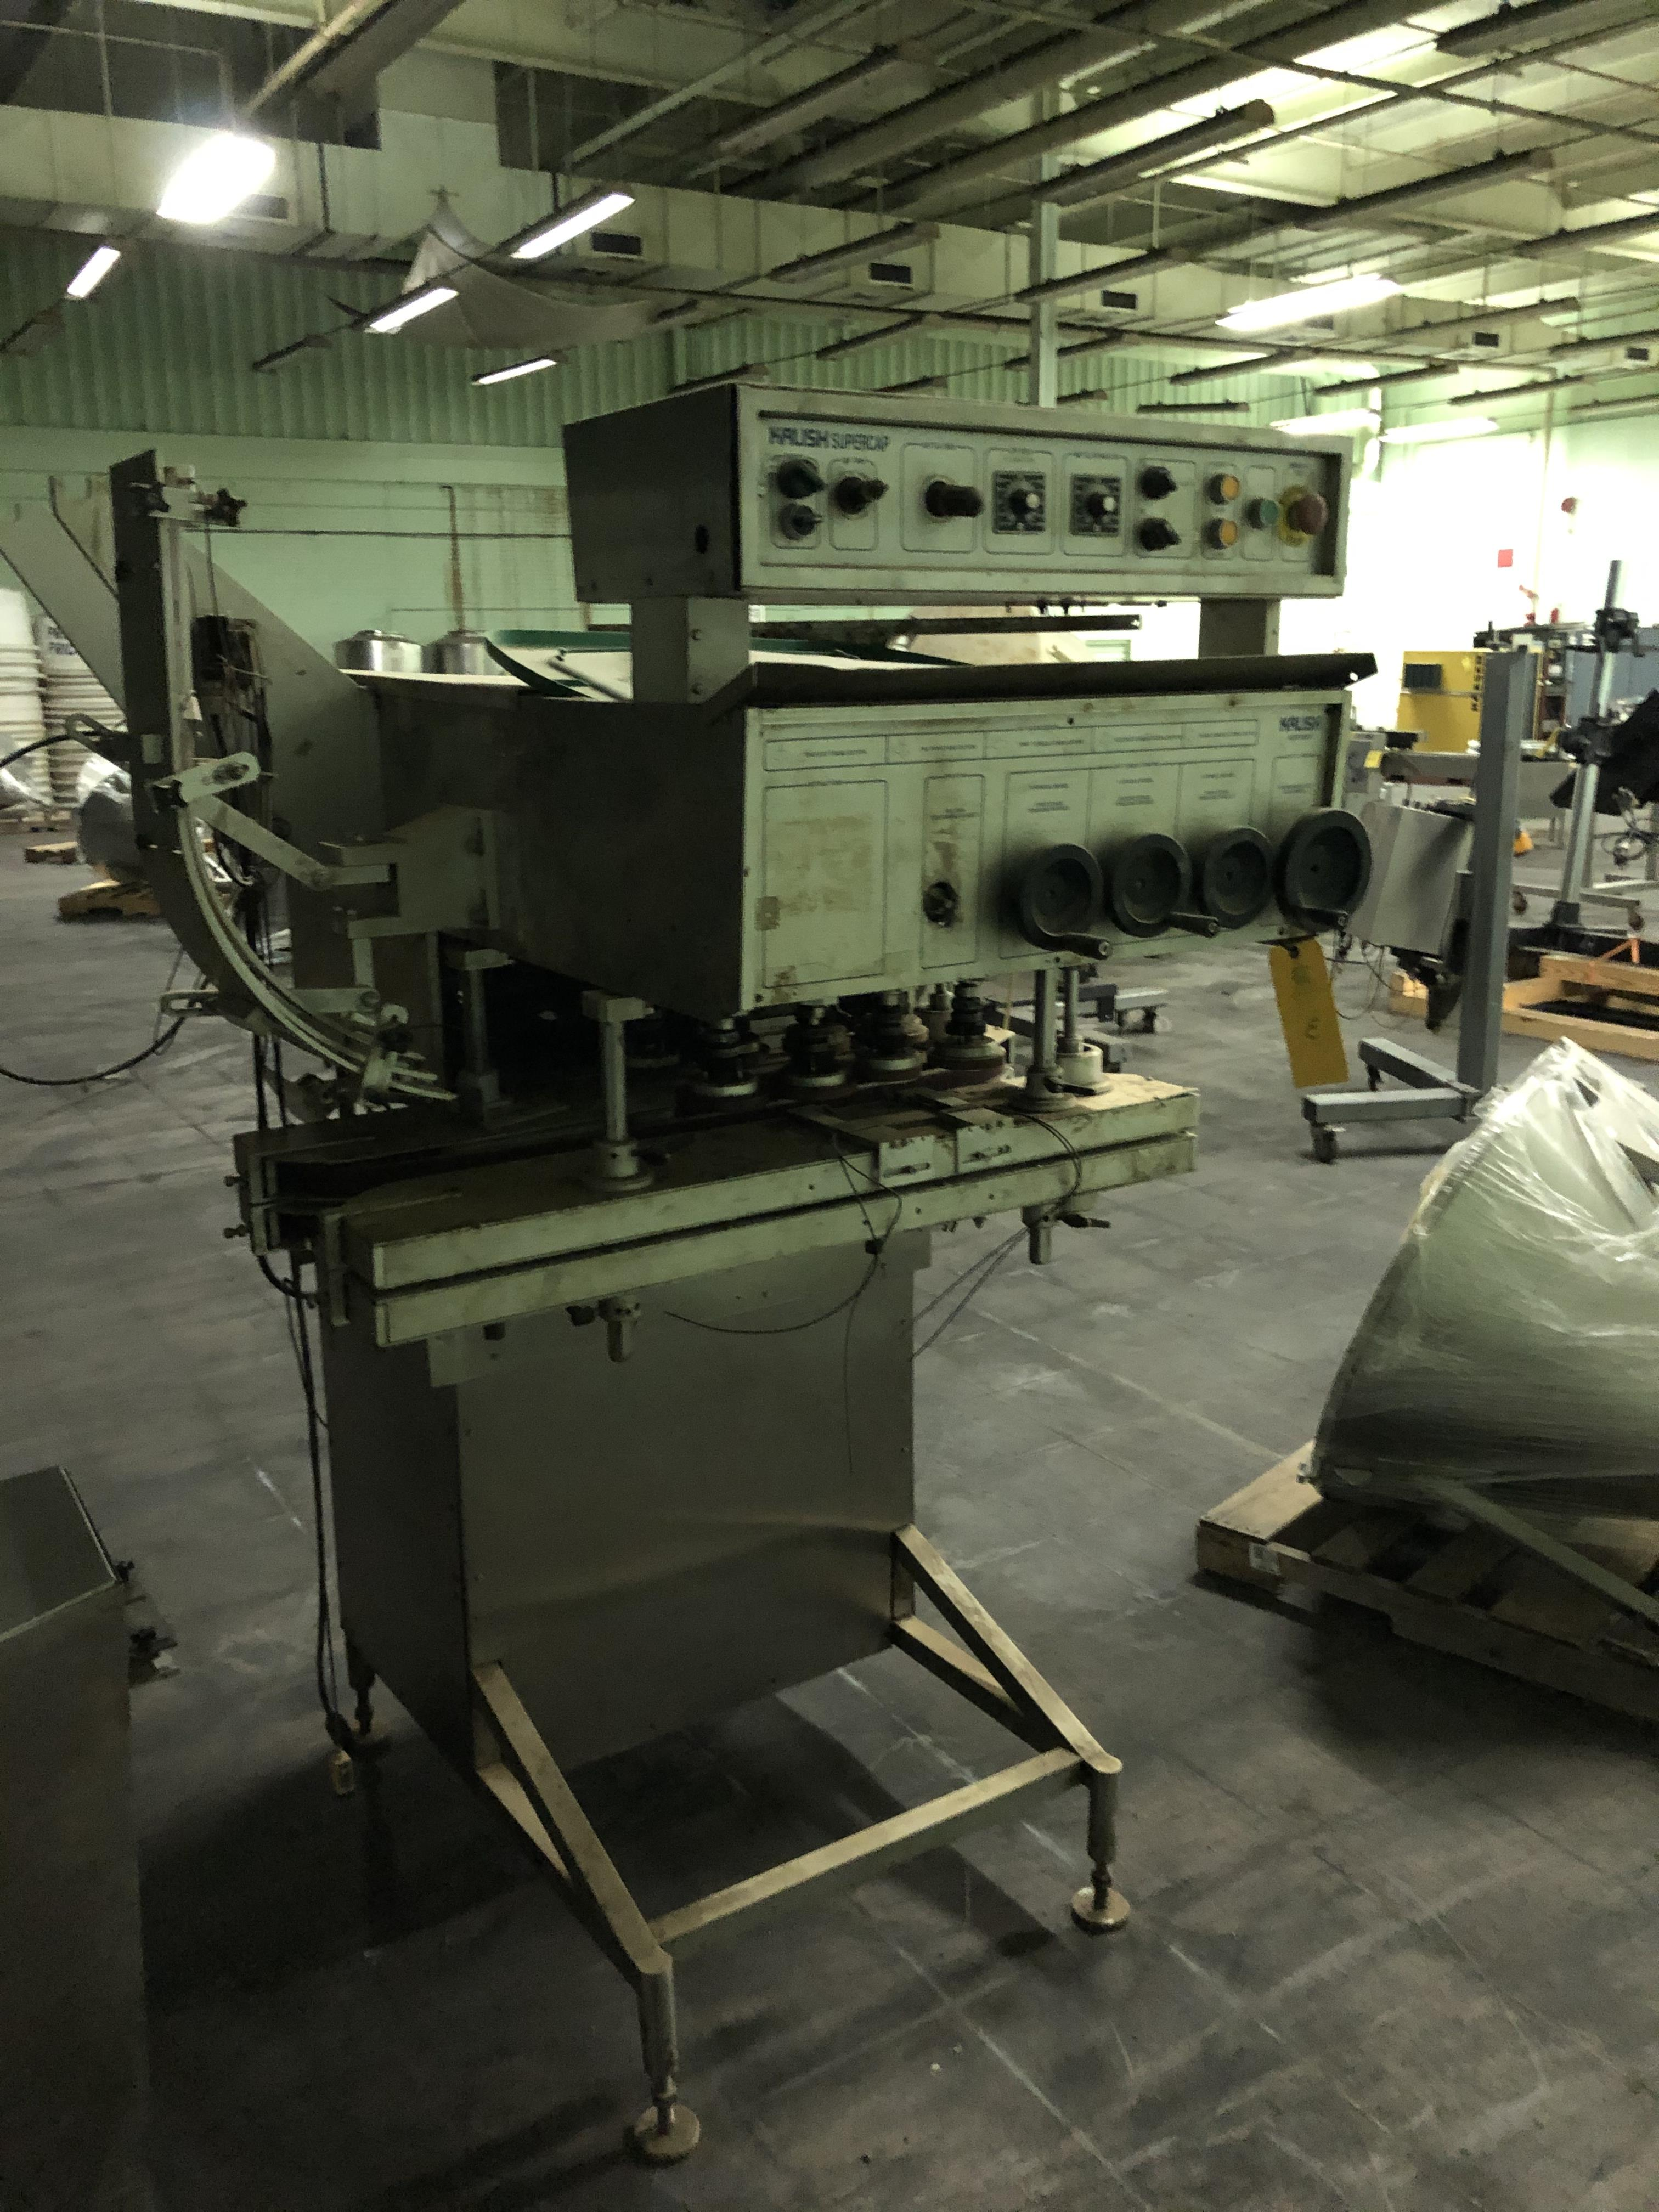 Kalish Model #5010 Supercap Capper, SN 0310, Includes Conveyor Feed, RIGGING FEE $450 - Image 2 of 6